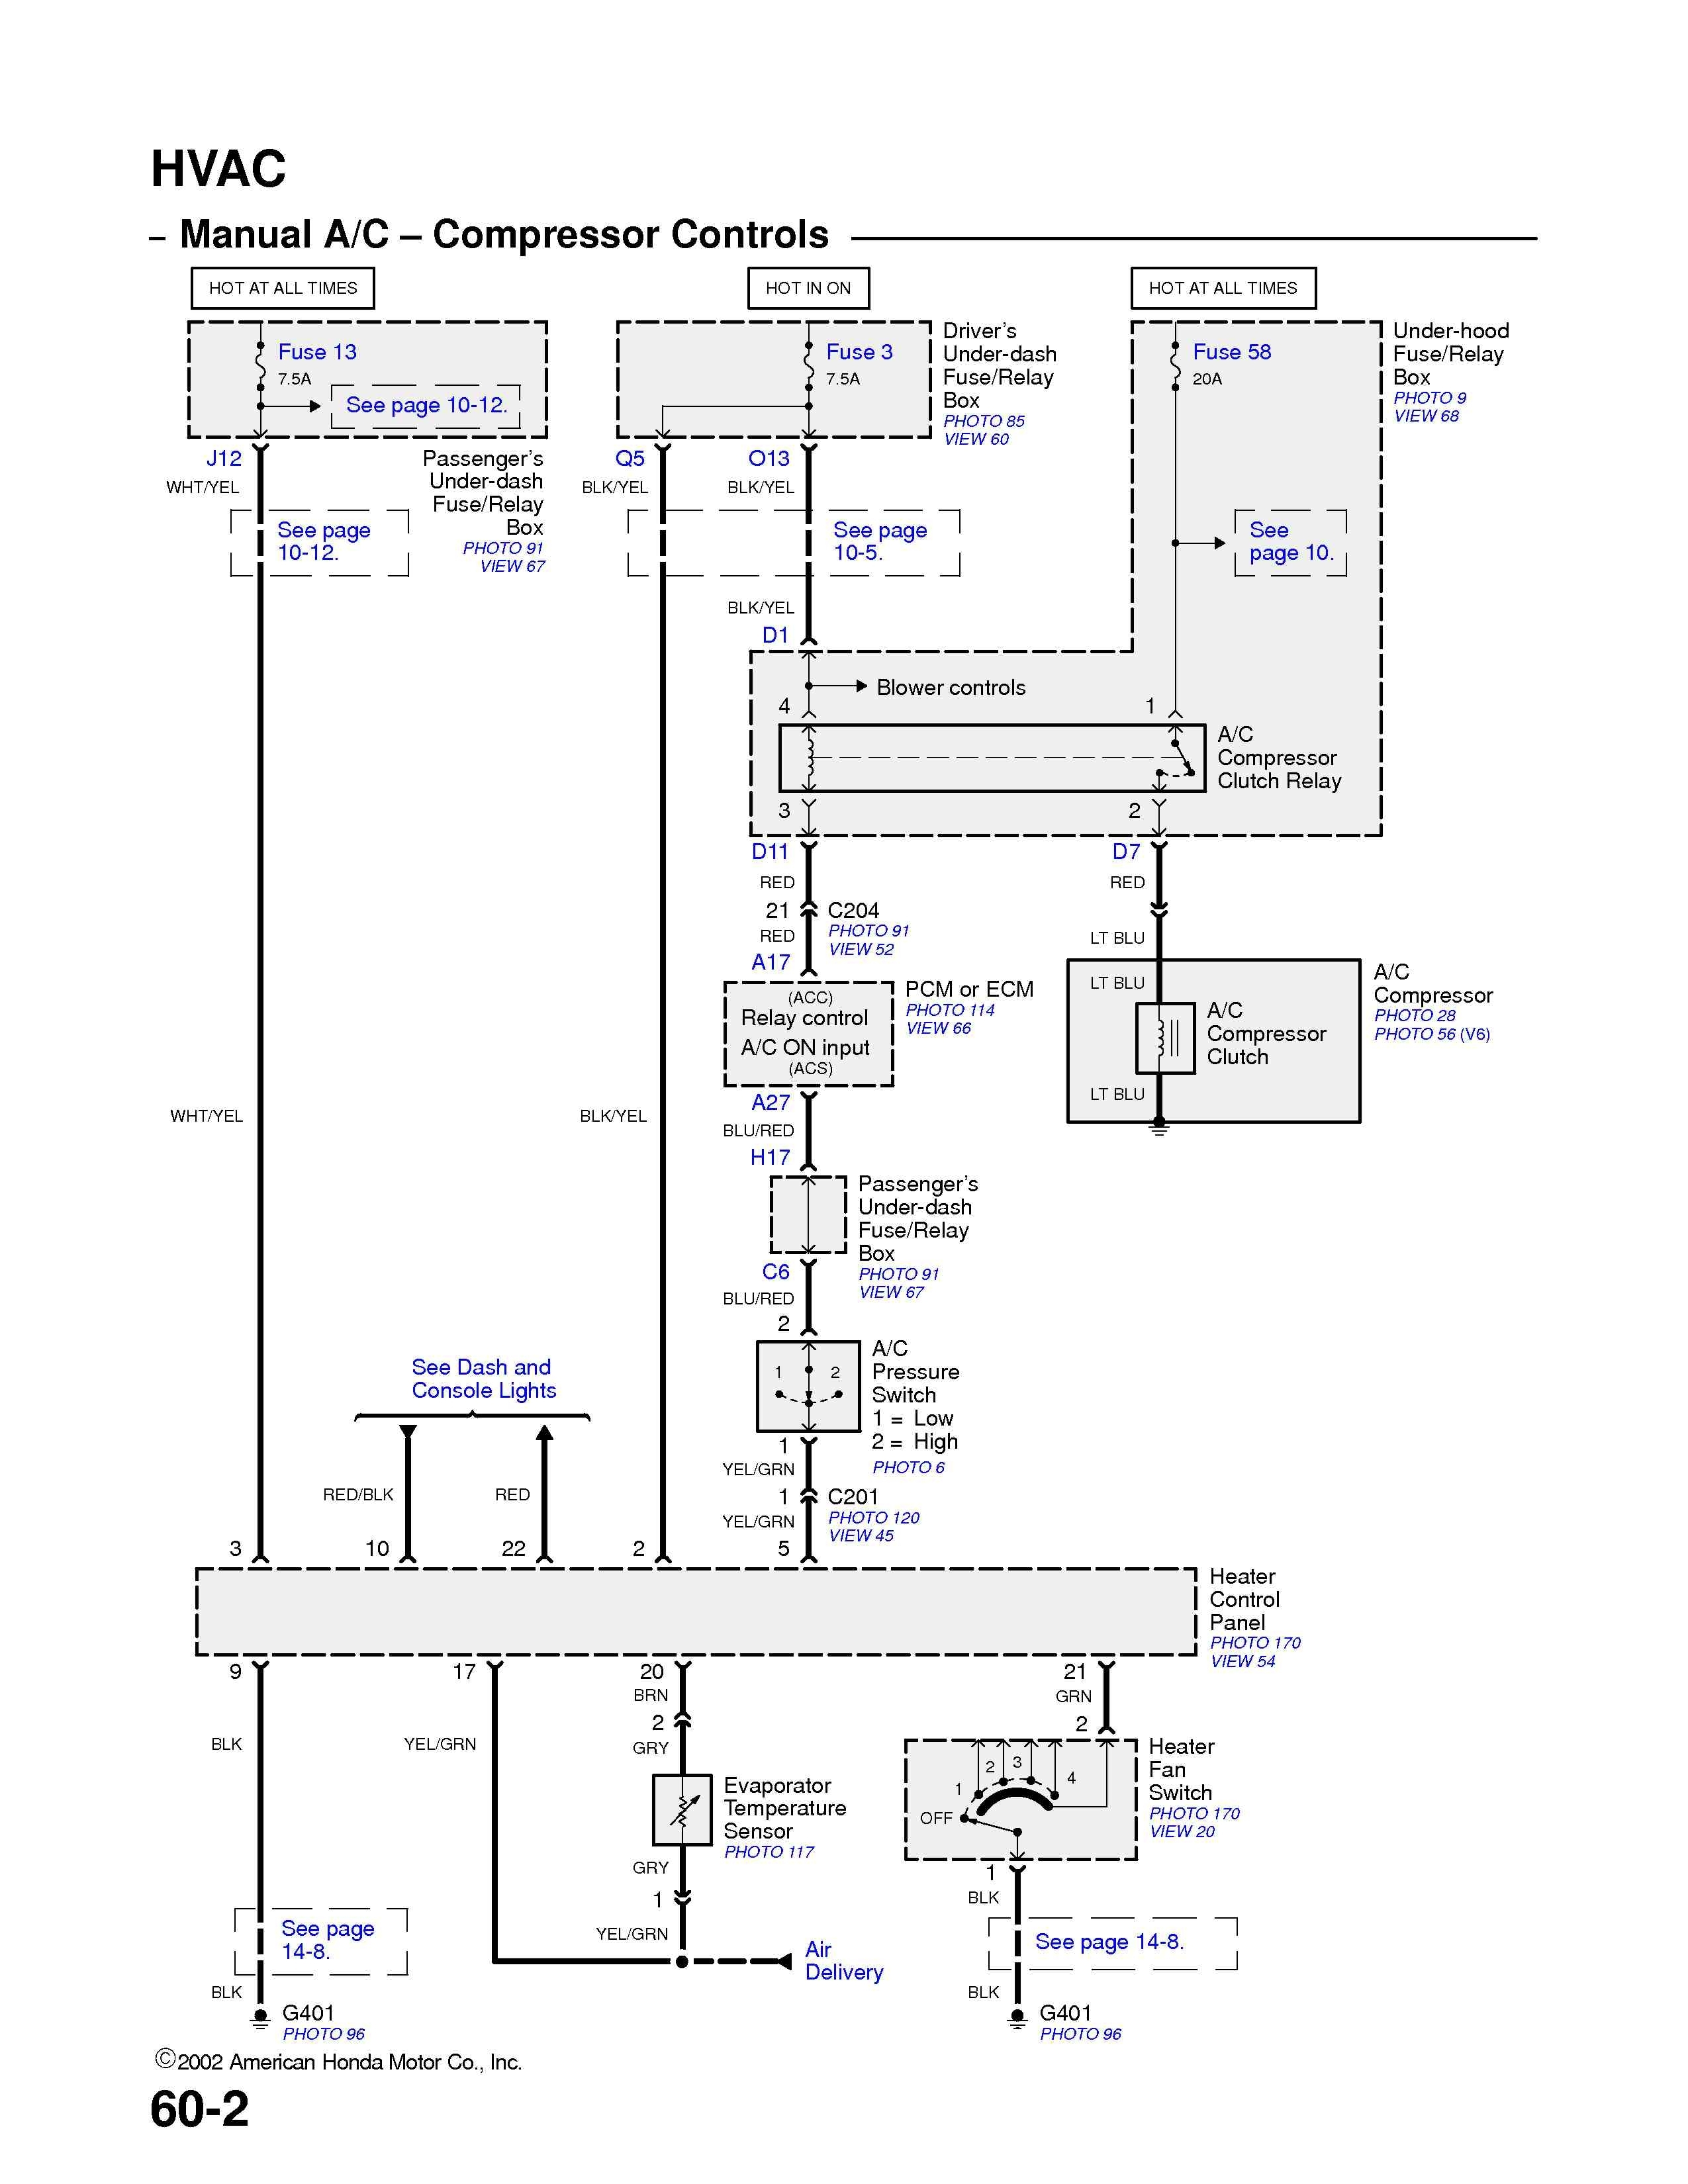 2003 Honda Accord Fuse Diagram For Air Conditioning Wiring 2001 Auto